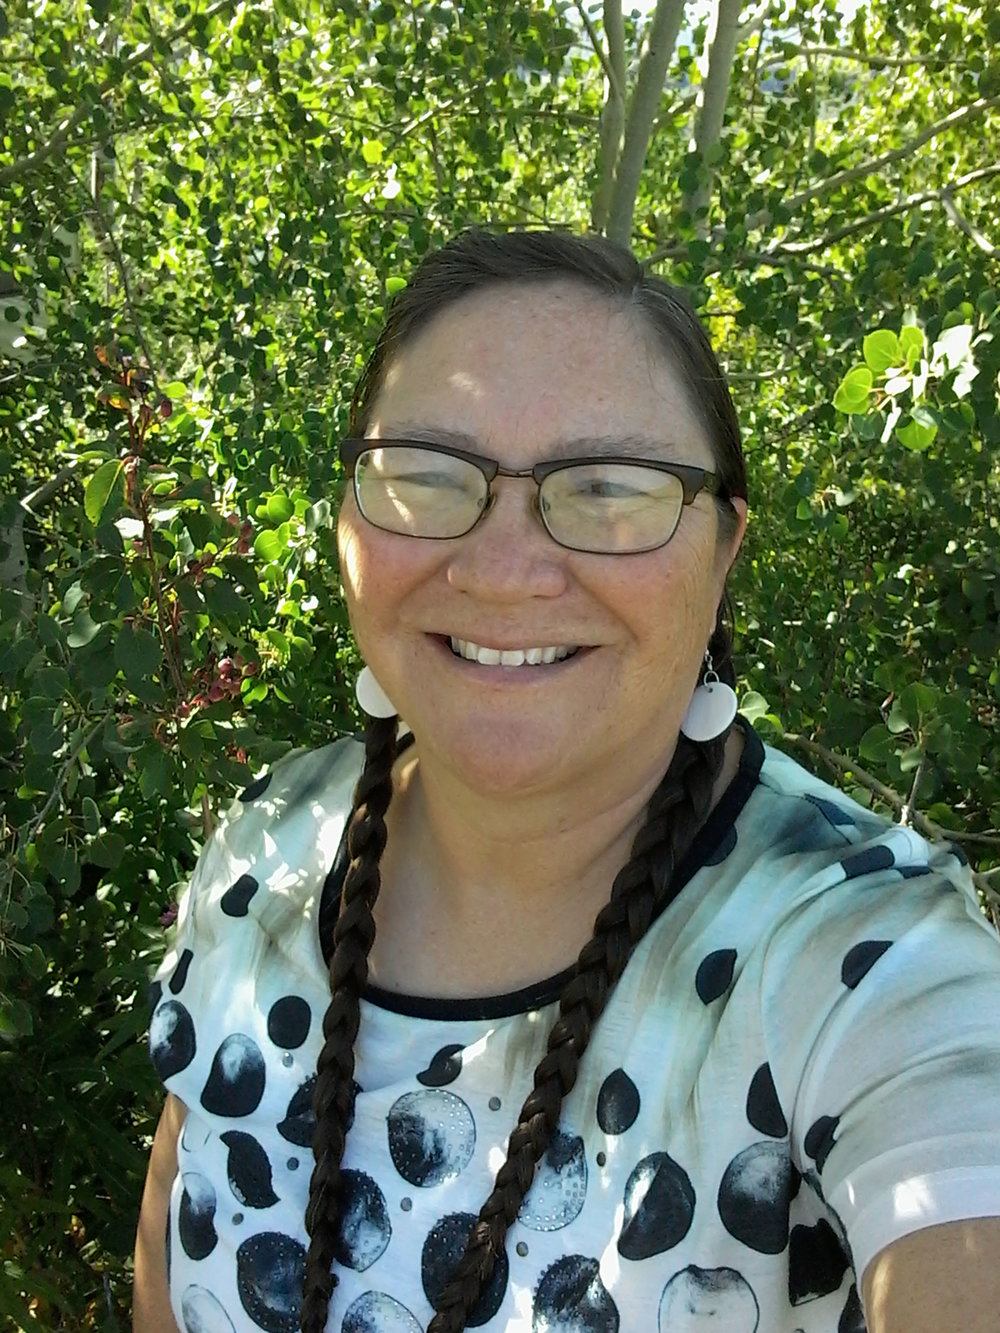 Rosalyn LaPier, PhD is an award winning Indigenous writer, ethnobotanist and environmental historian. She studies Indigenous peoples unique view of the natural world, in which natural science and religion intersect. She is an enrolled member of the Blackfeet Tribe of Montana and Métis. 1/26/2017